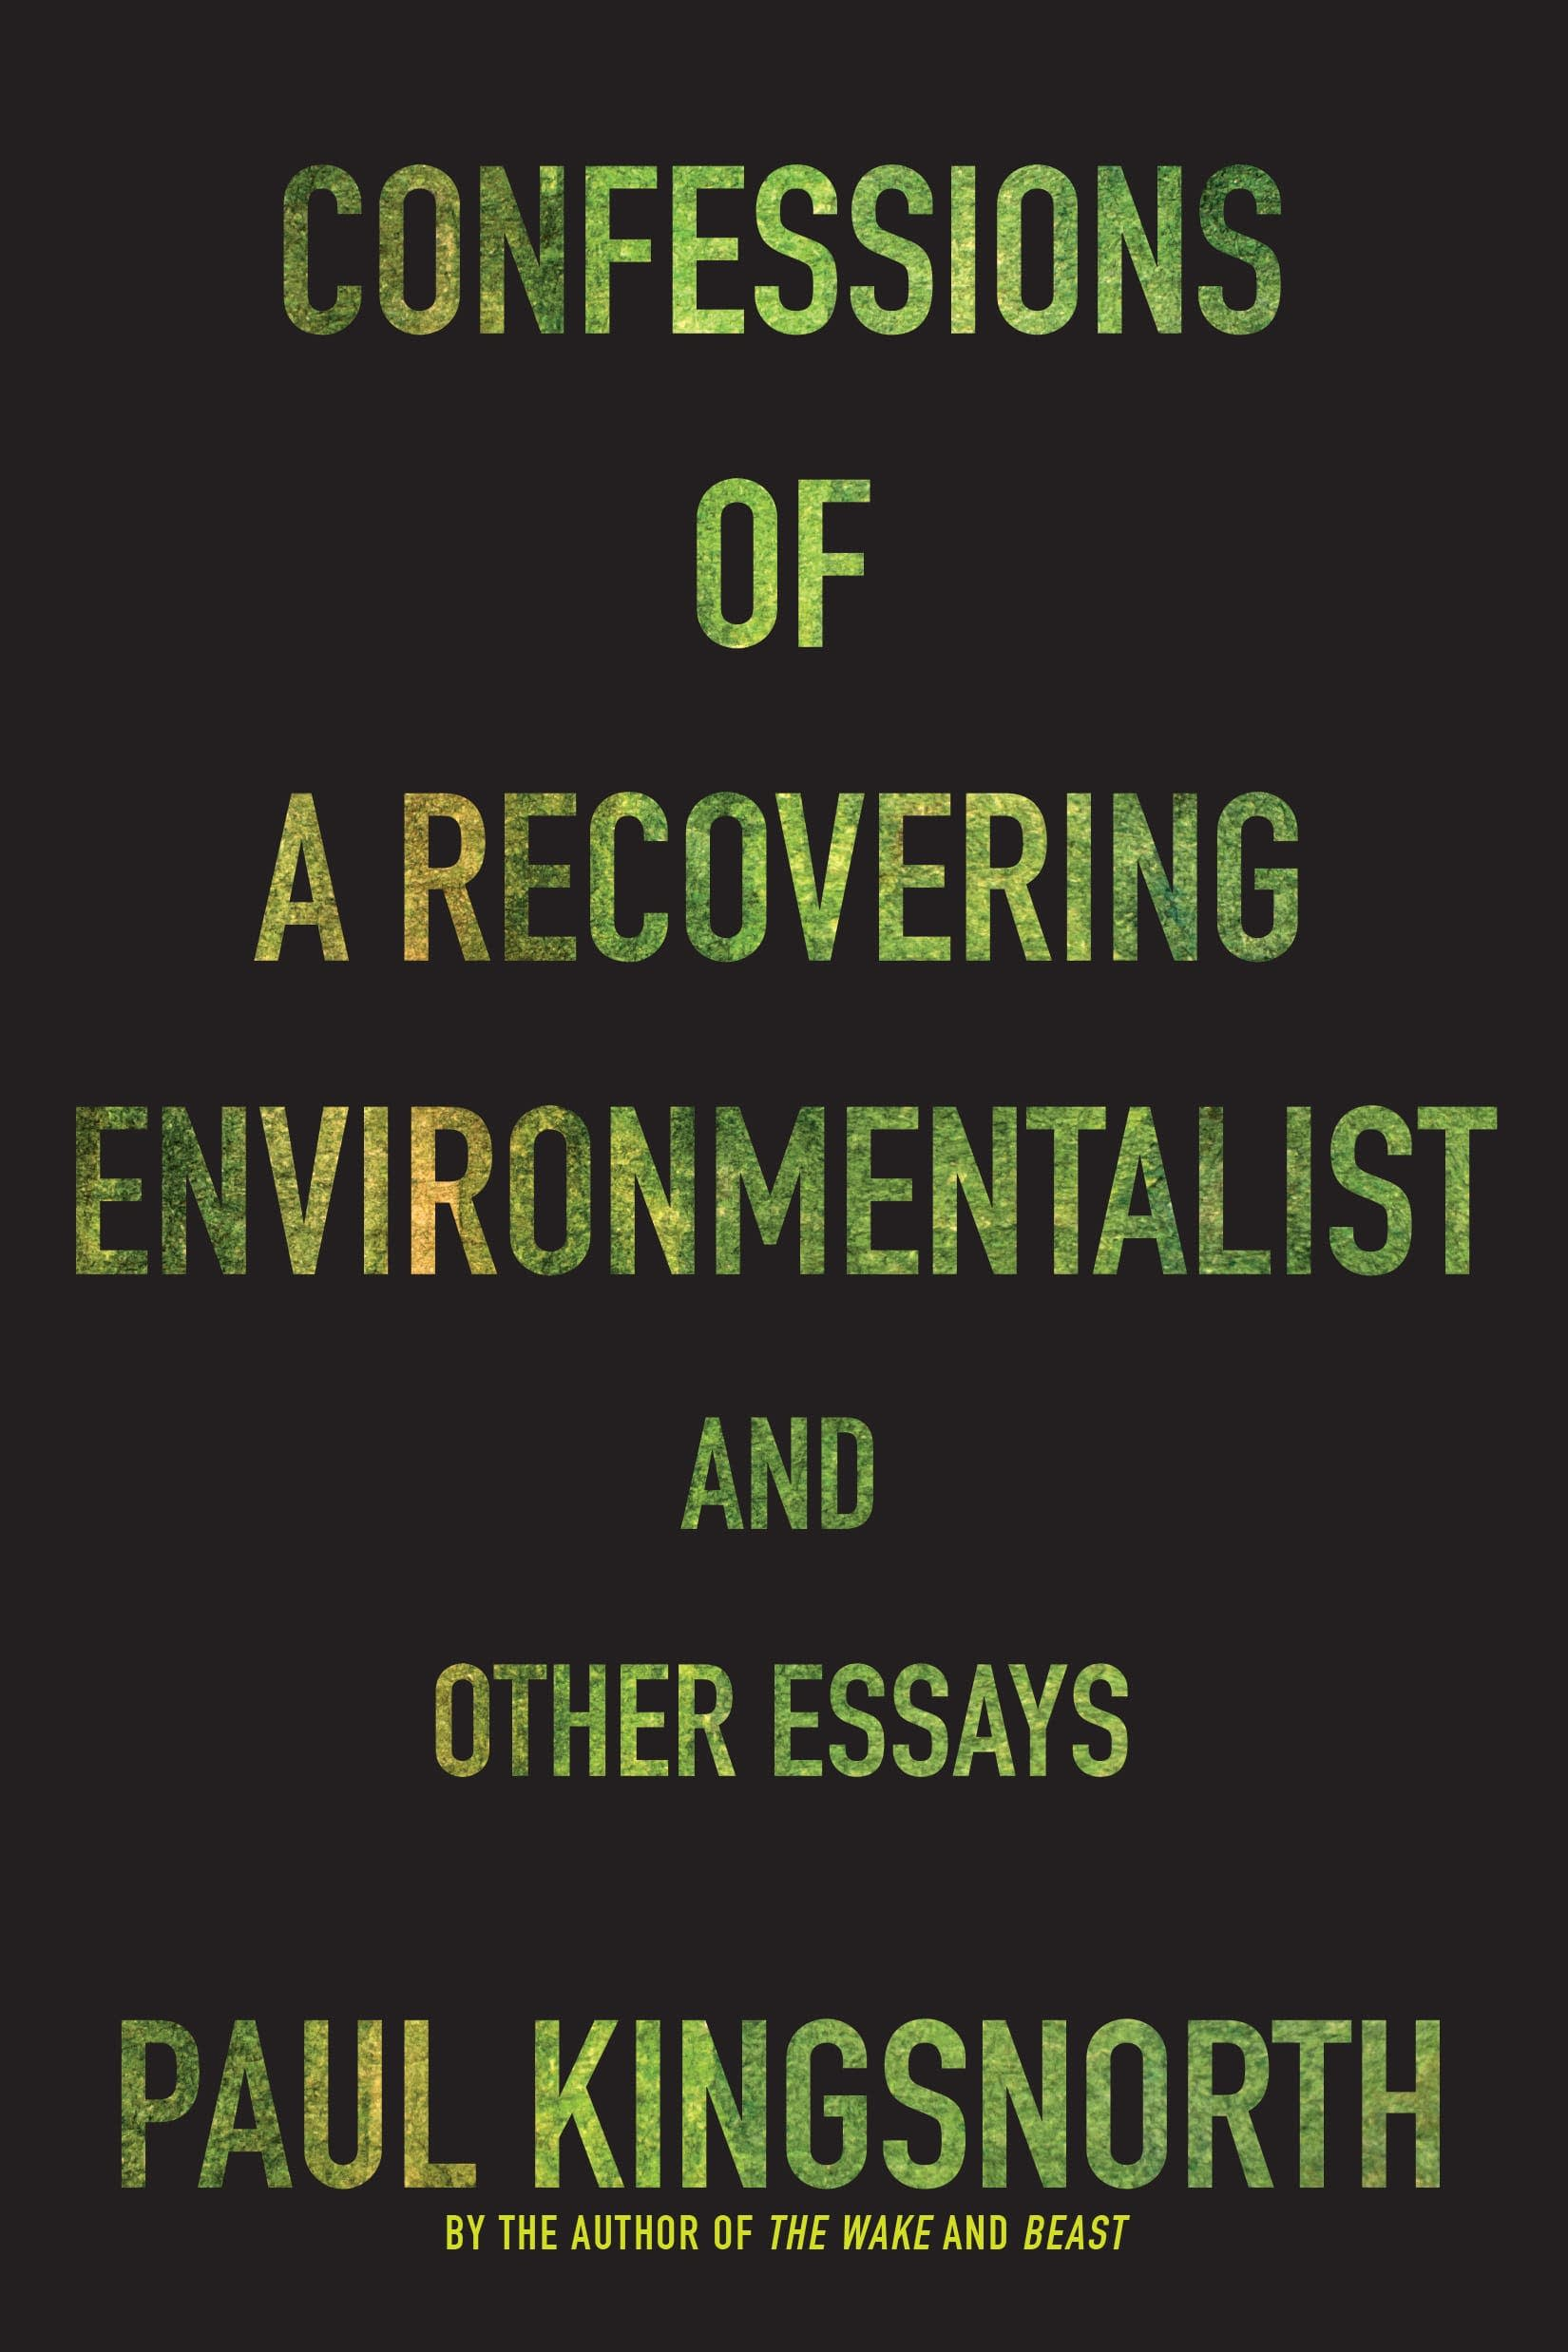 Confessions of a Recovering Environmentalist, by Paul Kingsnorth